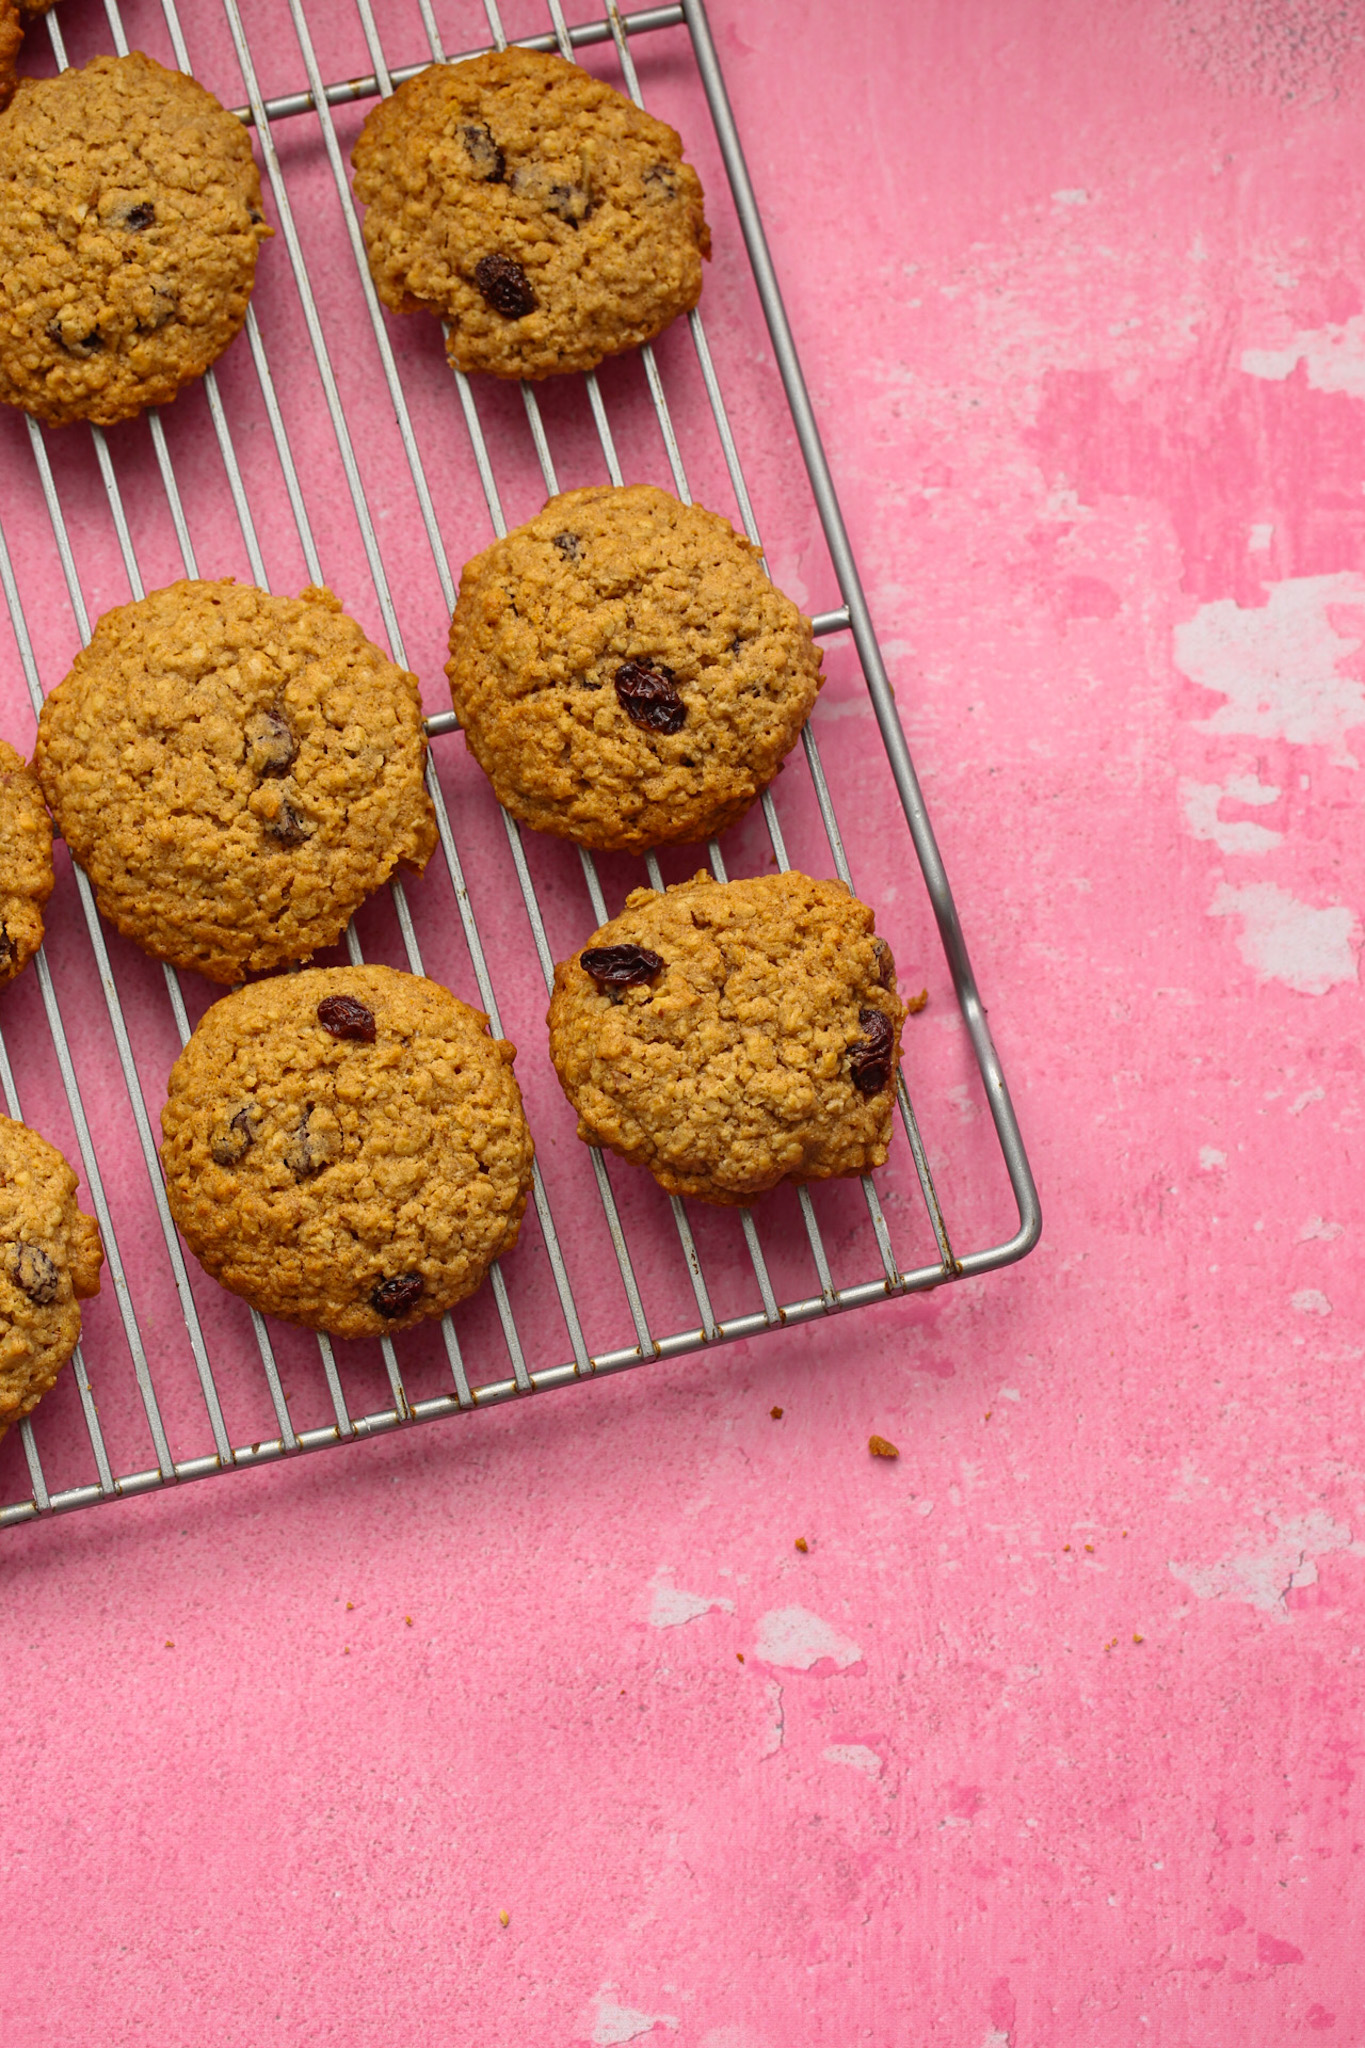 oatmeal raisin cookies on pink background